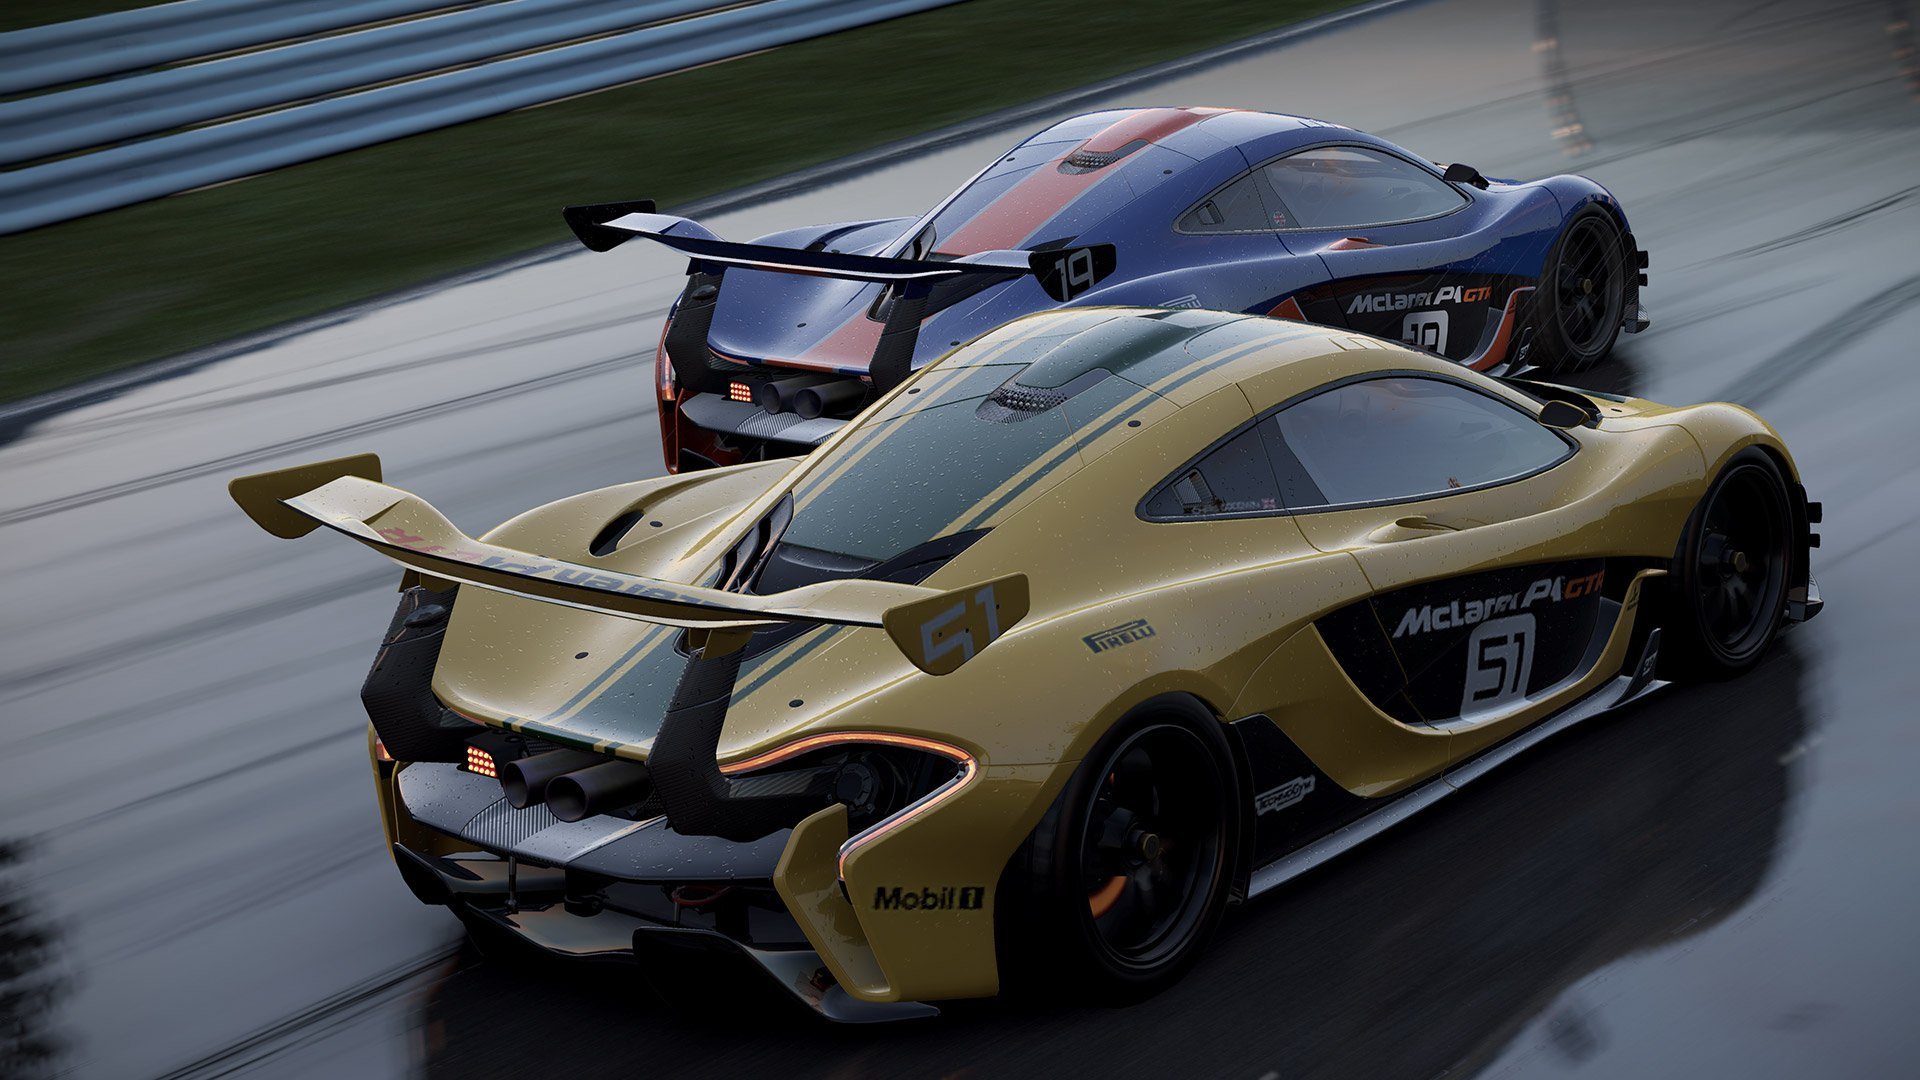 Here's some exclusive Project CARS 2 PS4 gameplay to get you pumped